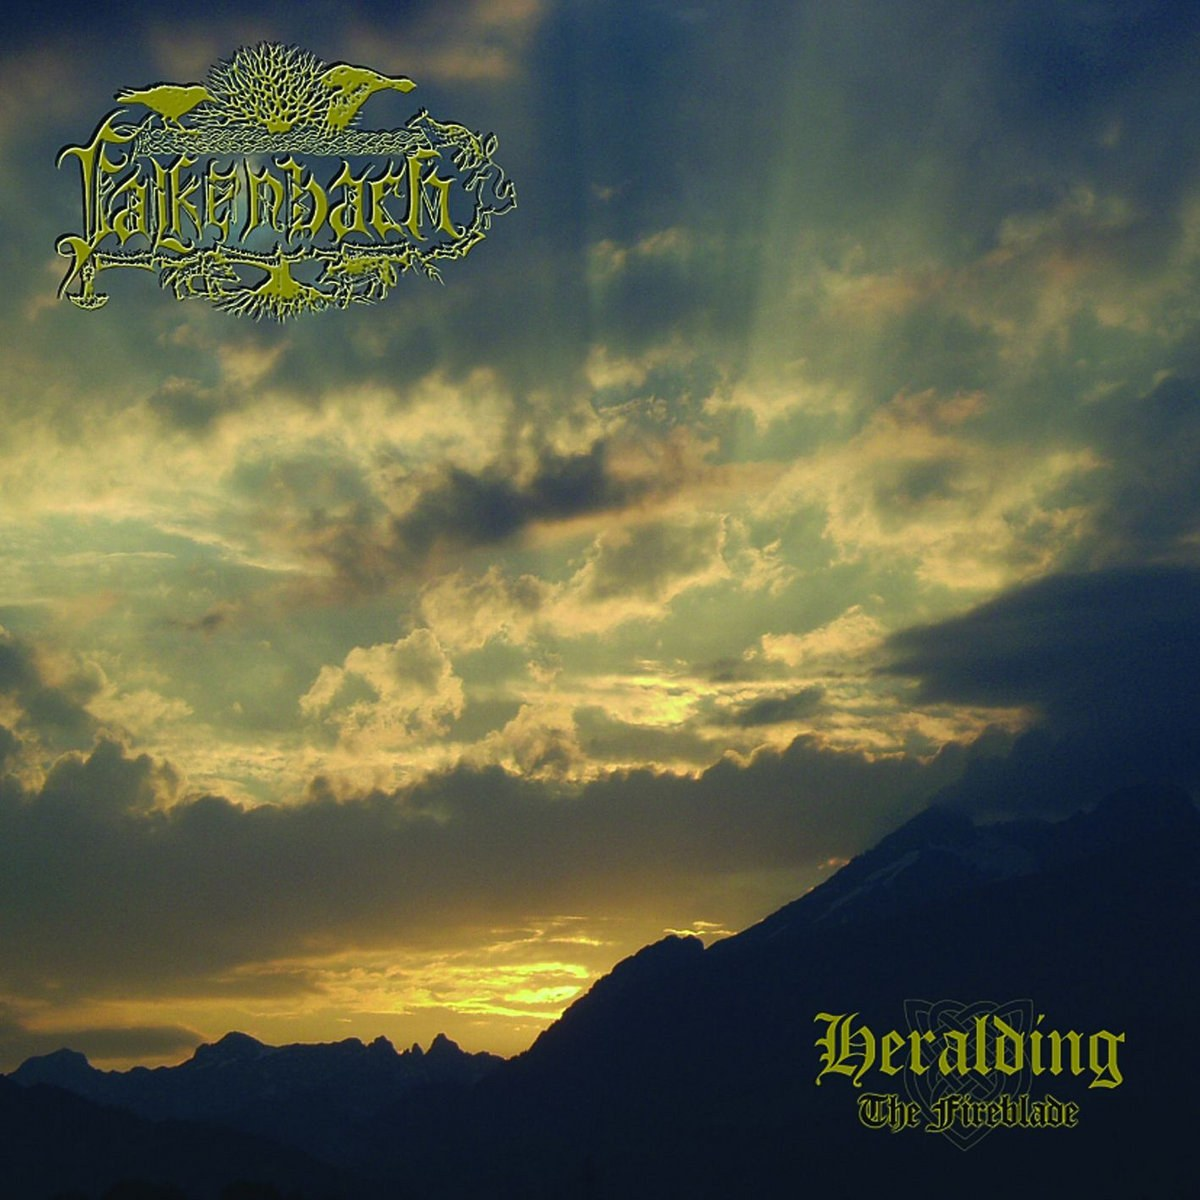 Review for Falkenbach - Heralding (The Fireblade)